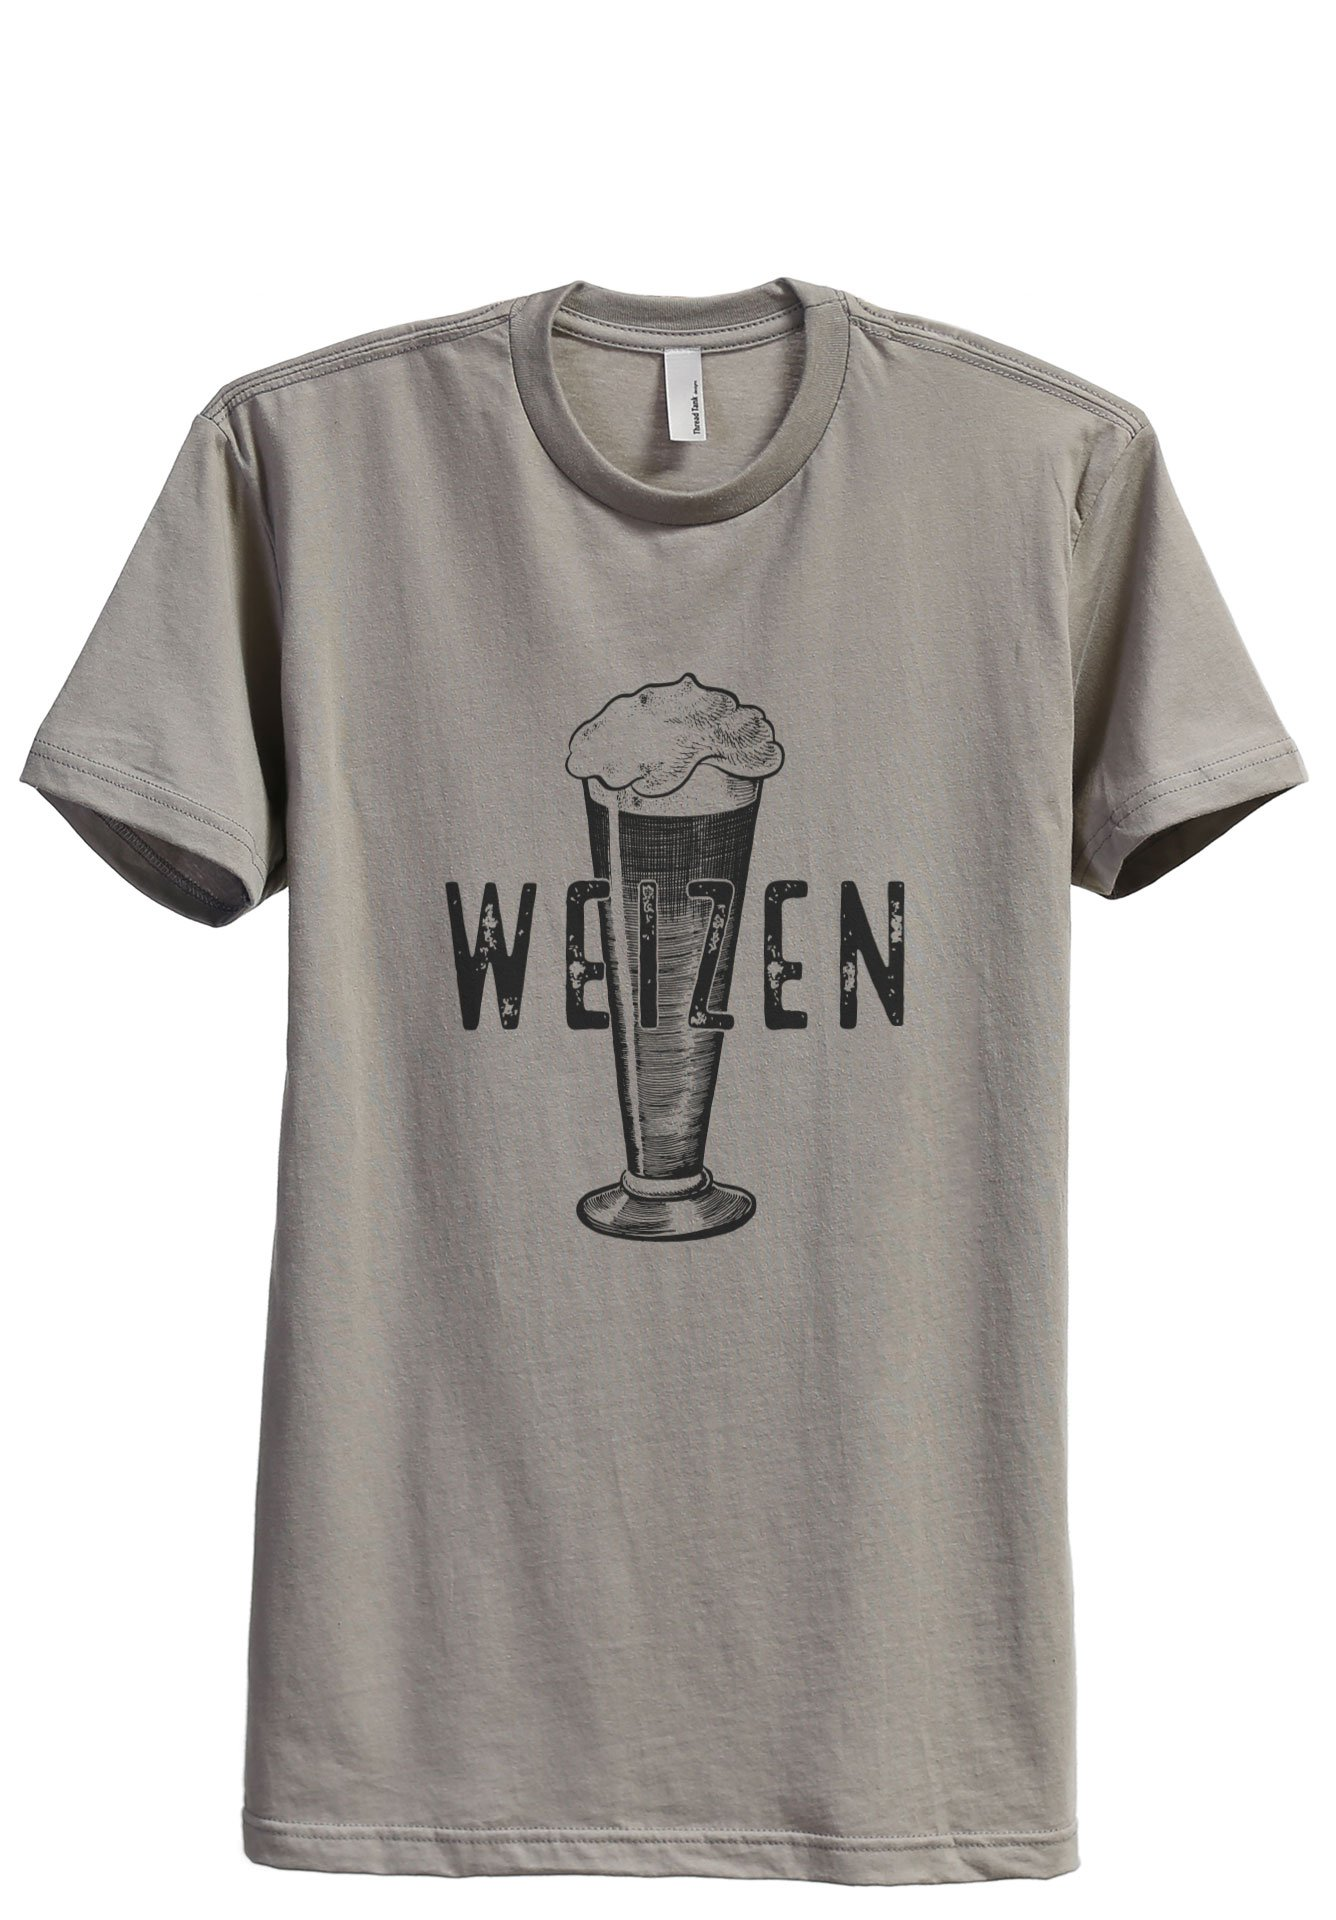 Thread Tank Weizen Glass Sketch Men's Modern Fit T-Shirt Printed Graphic Tee Military Grey Large